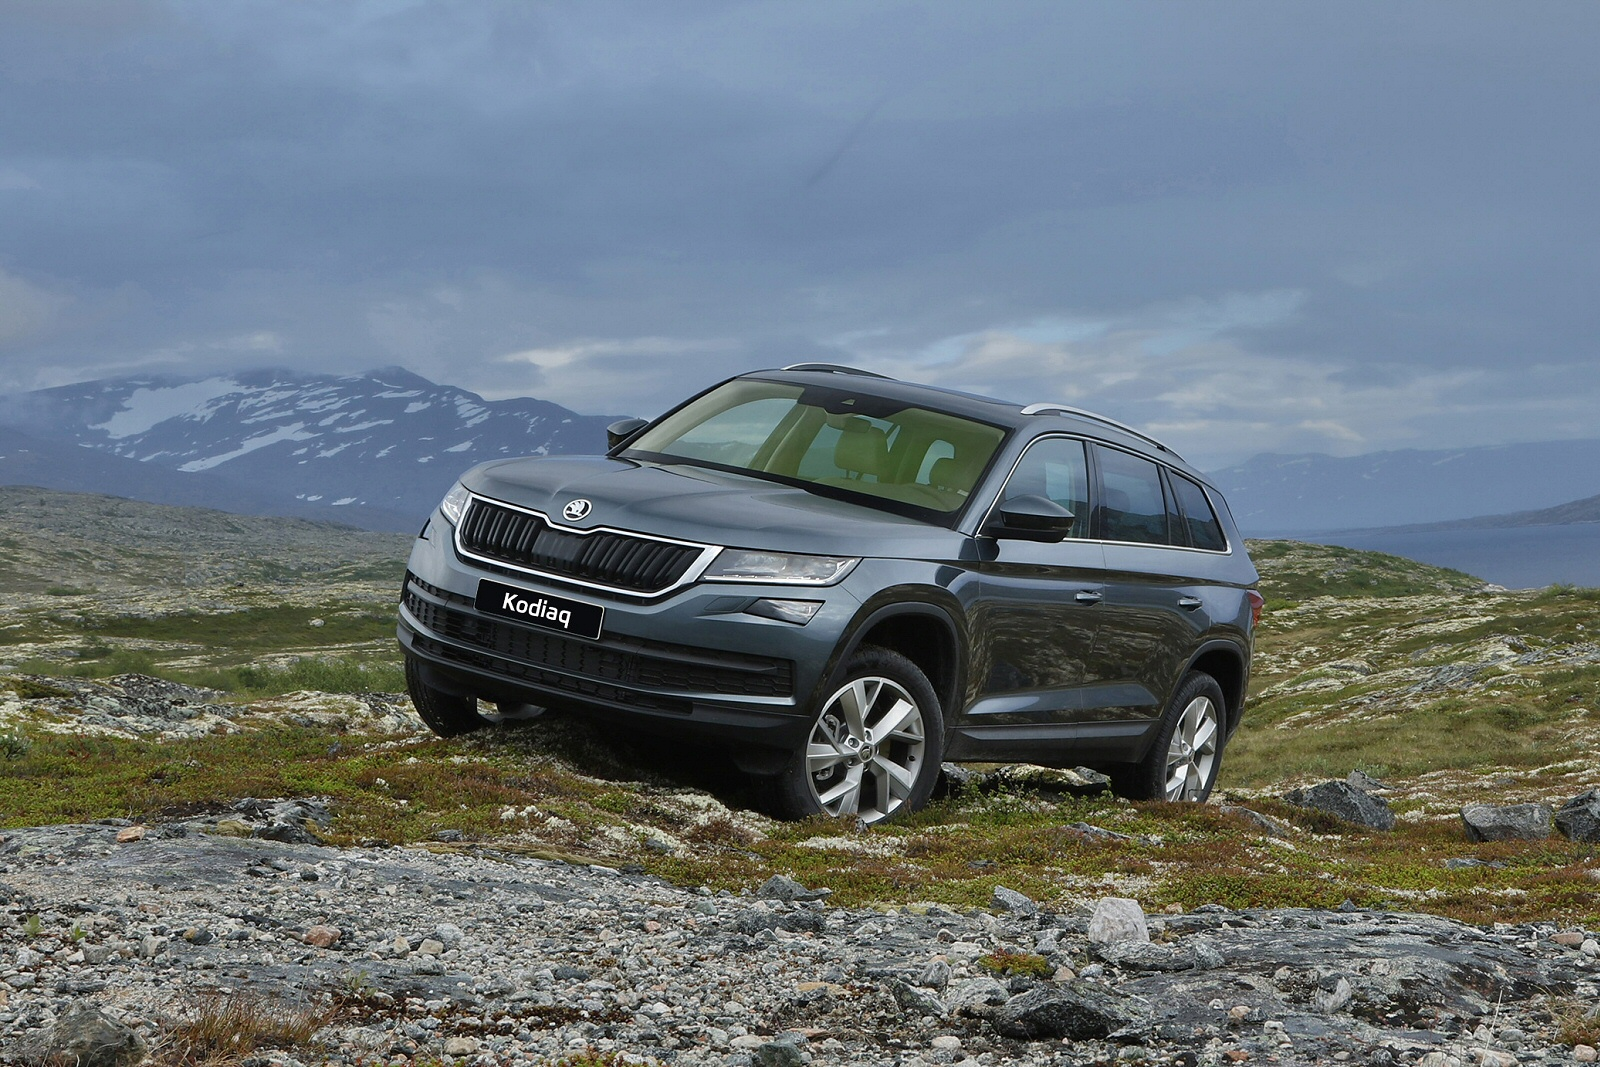 new skoda kodiaq 2 0 tdi 190 se l 4x4 5dr dsg 7 seat diesel estate for sale bristol street. Black Bedroom Furniture Sets. Home Design Ideas